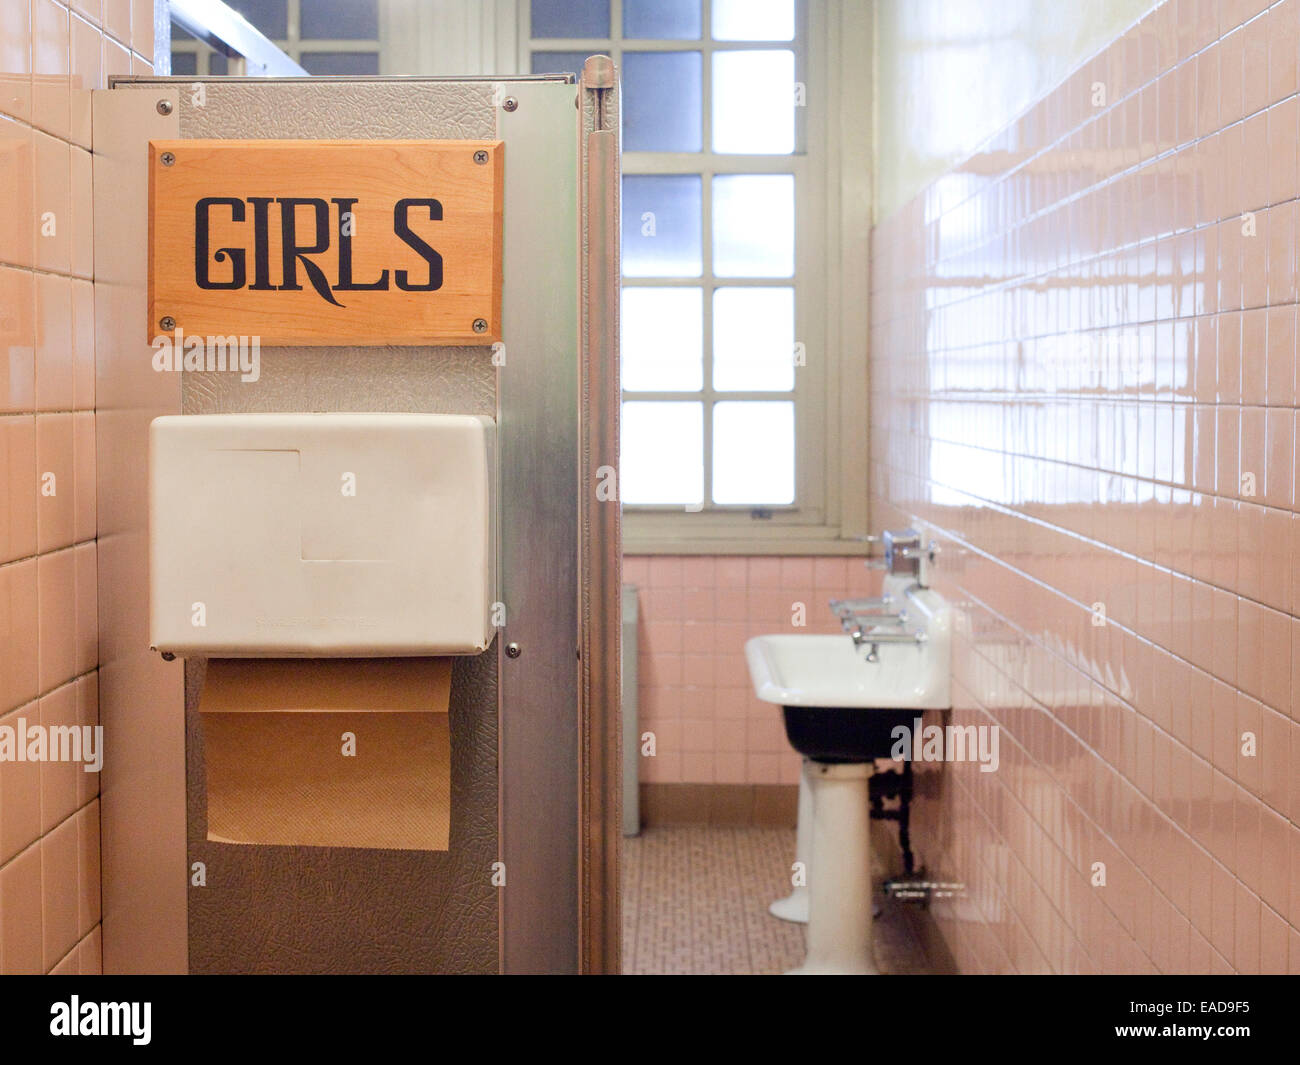 Pink Girl's Bathroom at a school - Stock Image